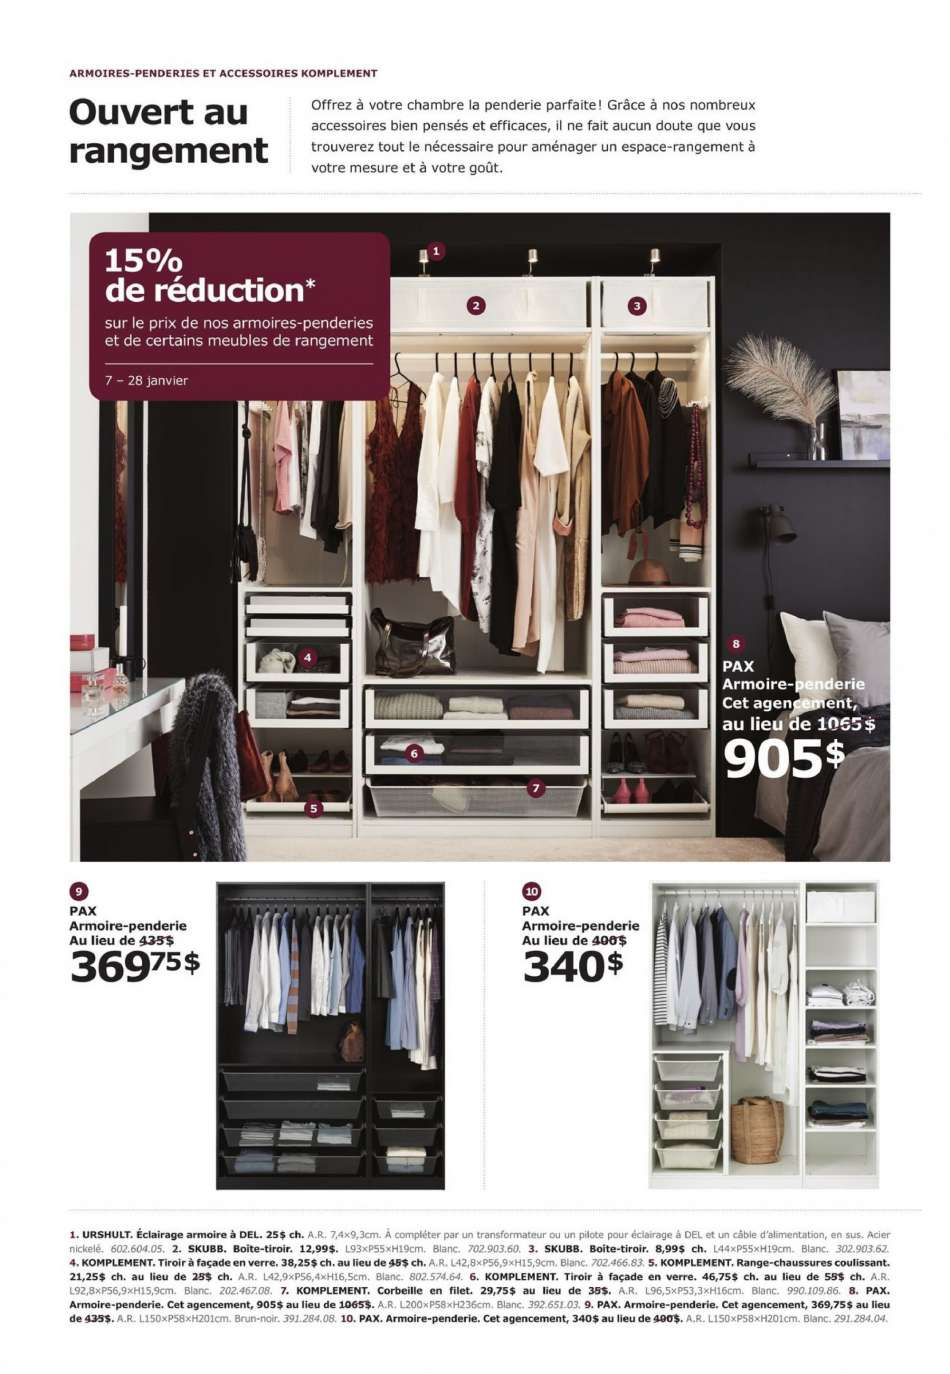 Boite À Cables Ikea current ikea flyer january 07, 2019 - january 28, 2019